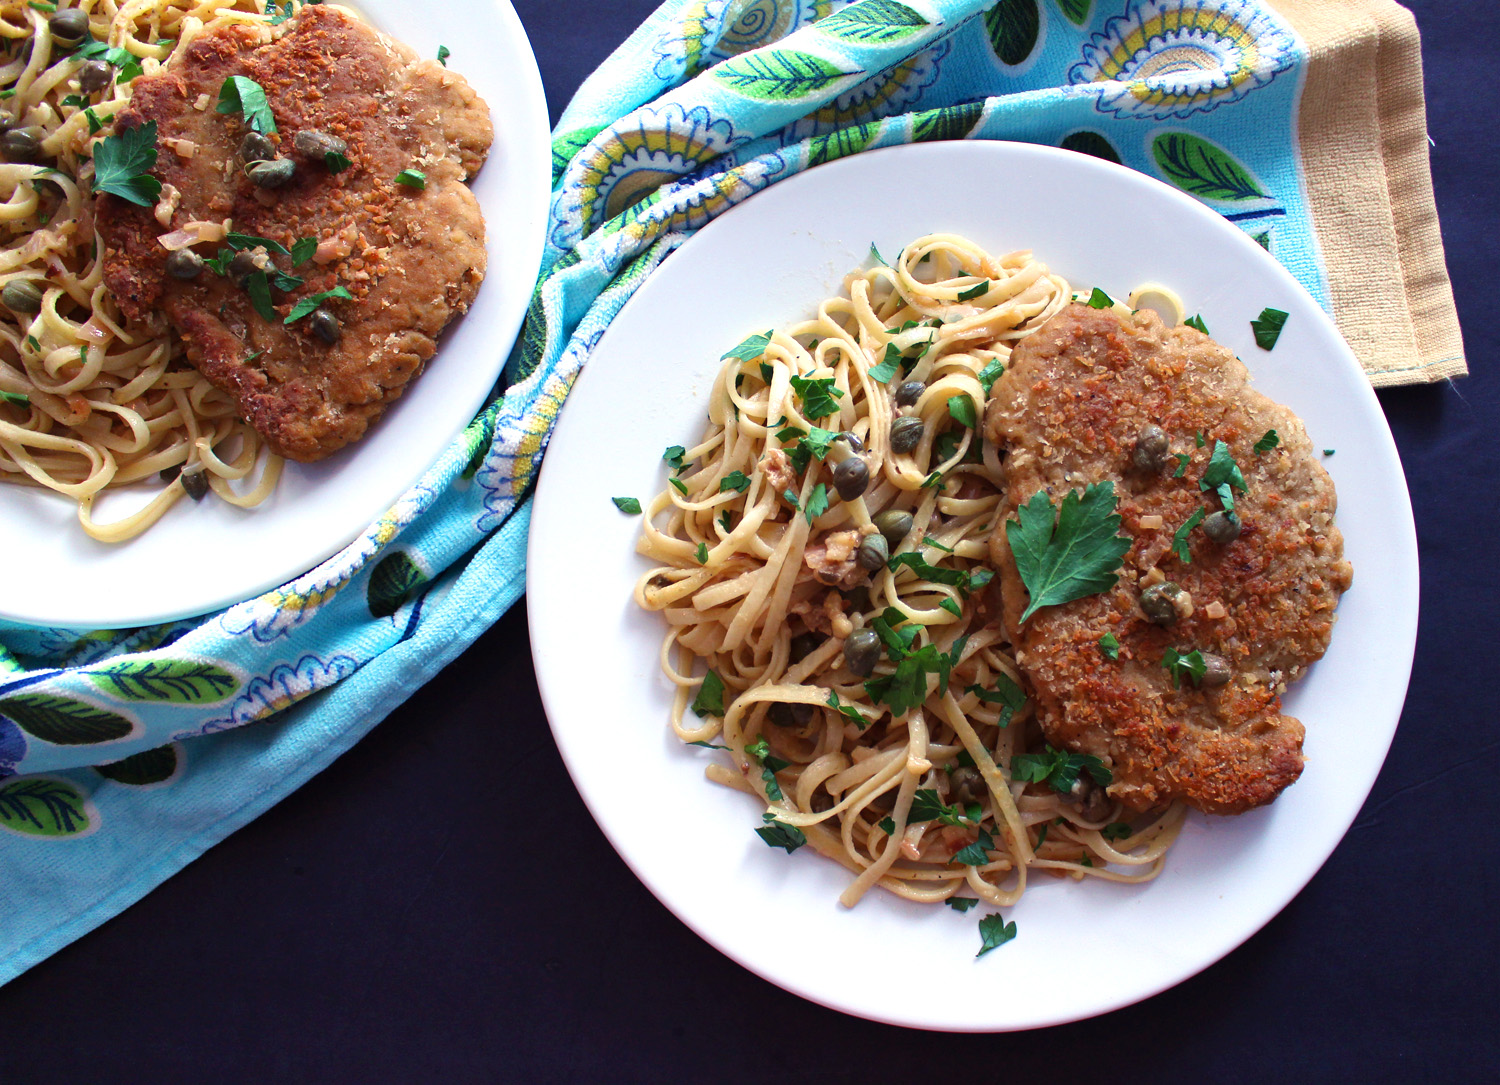 Unbelievable Vegan Chicken Piccata (Seitan)